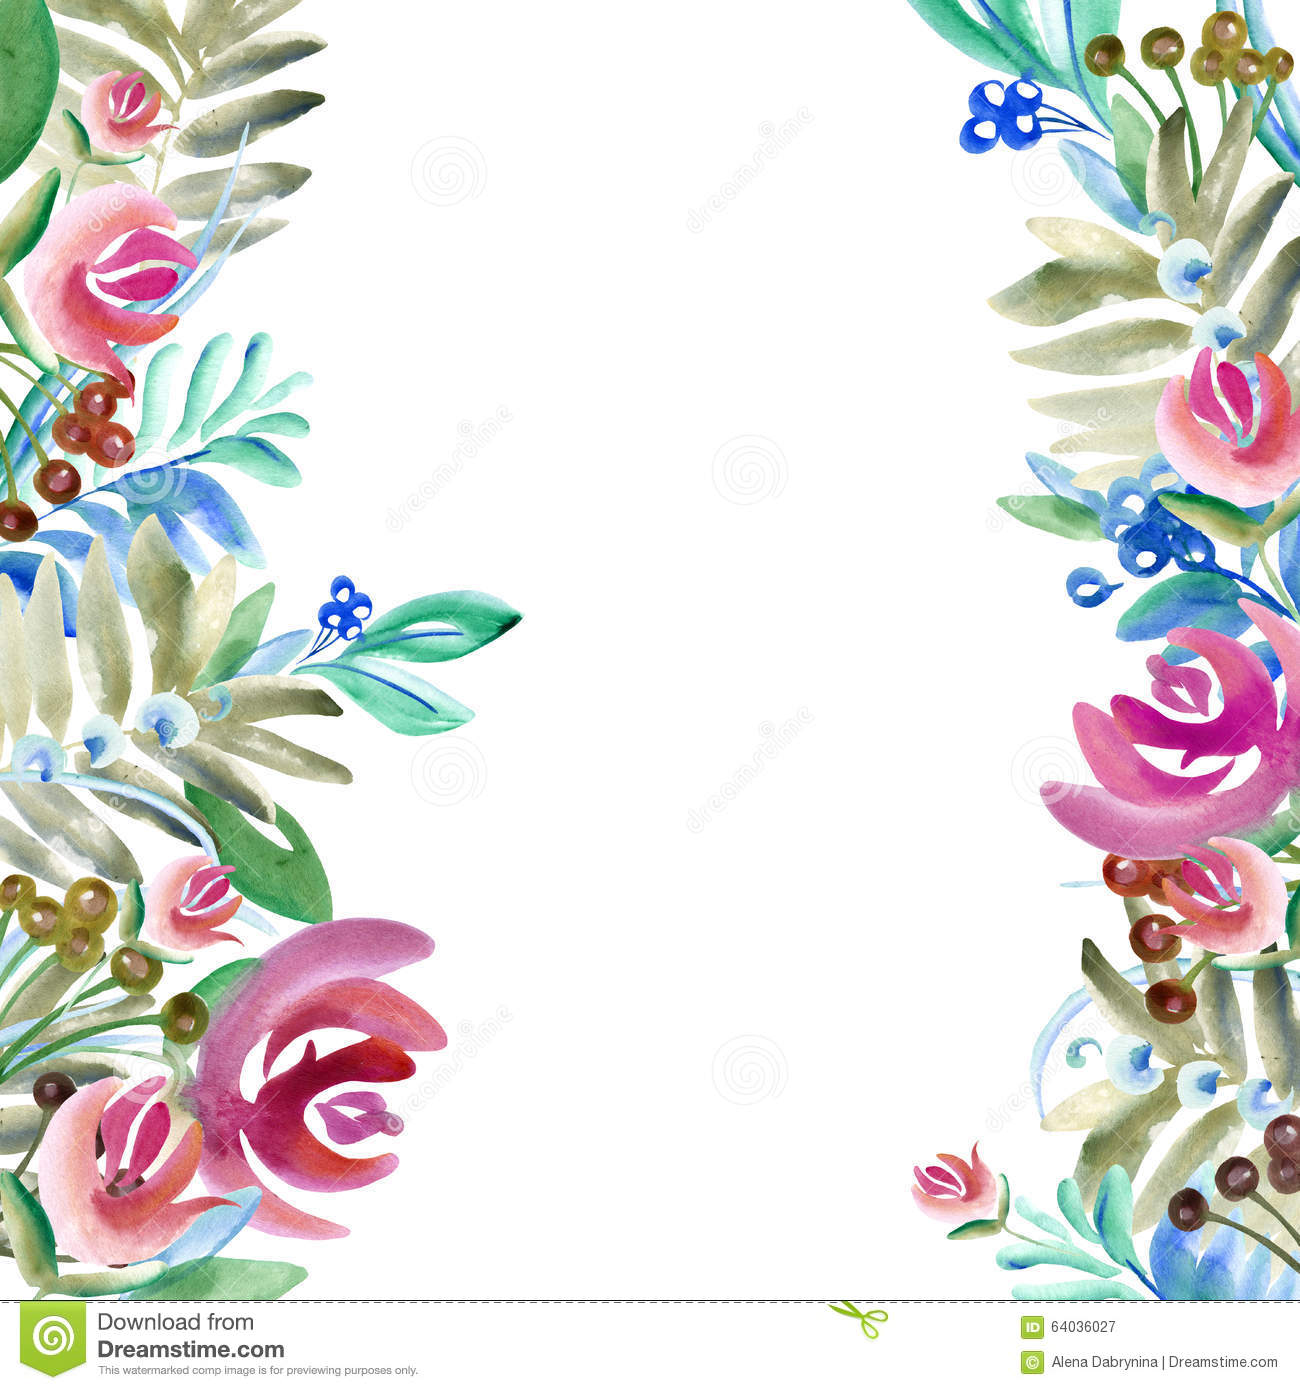 Watercolor Flowers And Plants Watercolor Floral Natural